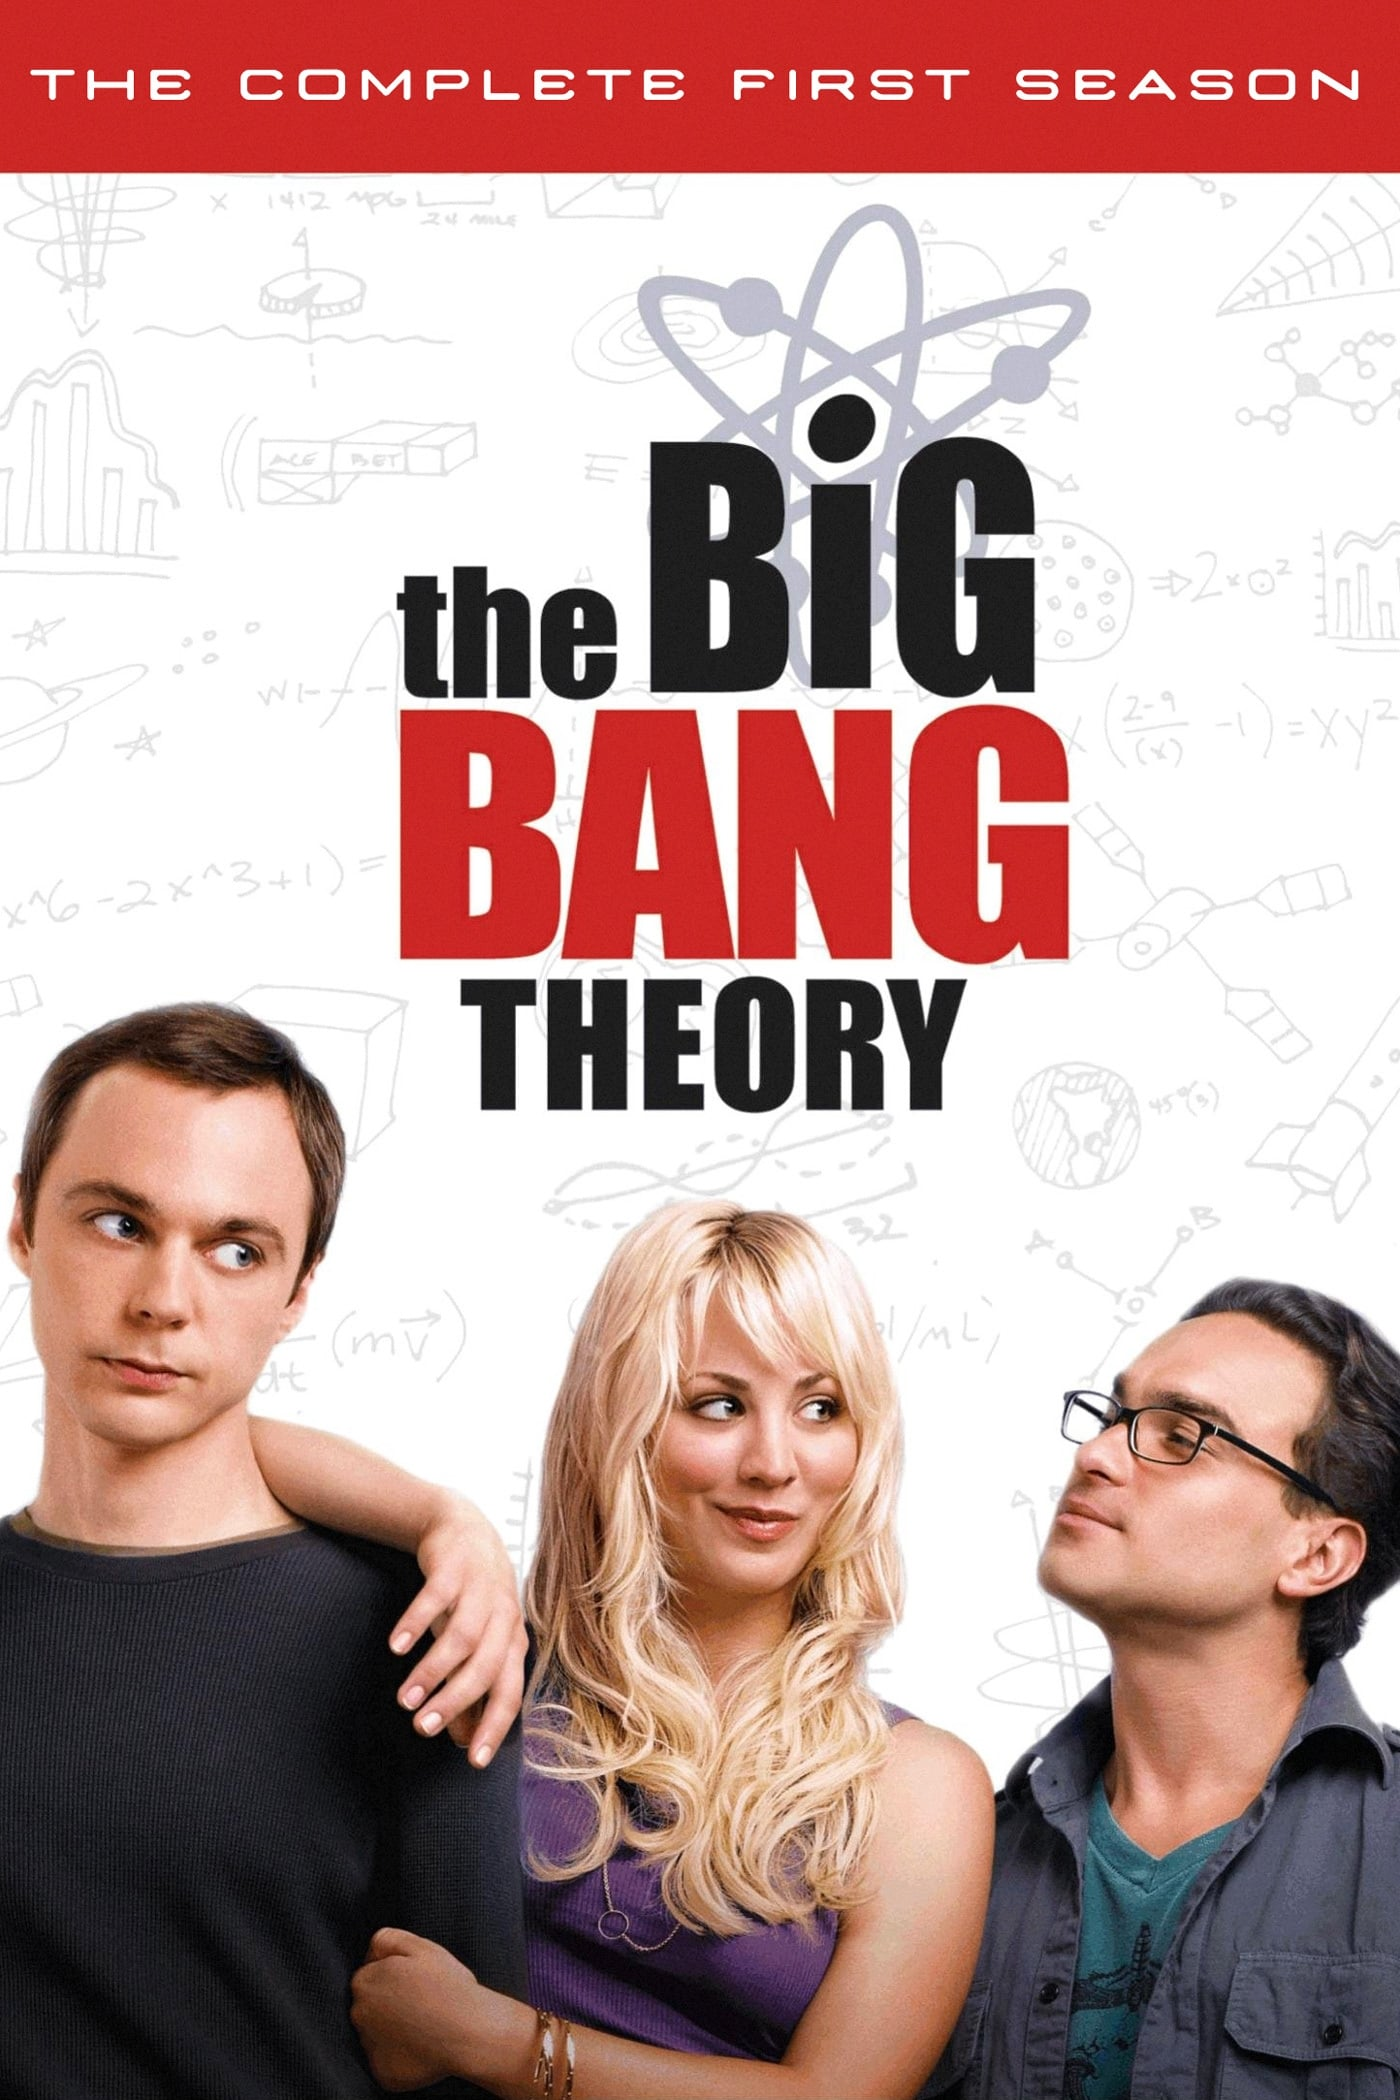 http://www.thepiratefilmeshd.com/the-big-bang-theory-1a-temporada-2007-bluray-720p-dual-audio-torrent-download/